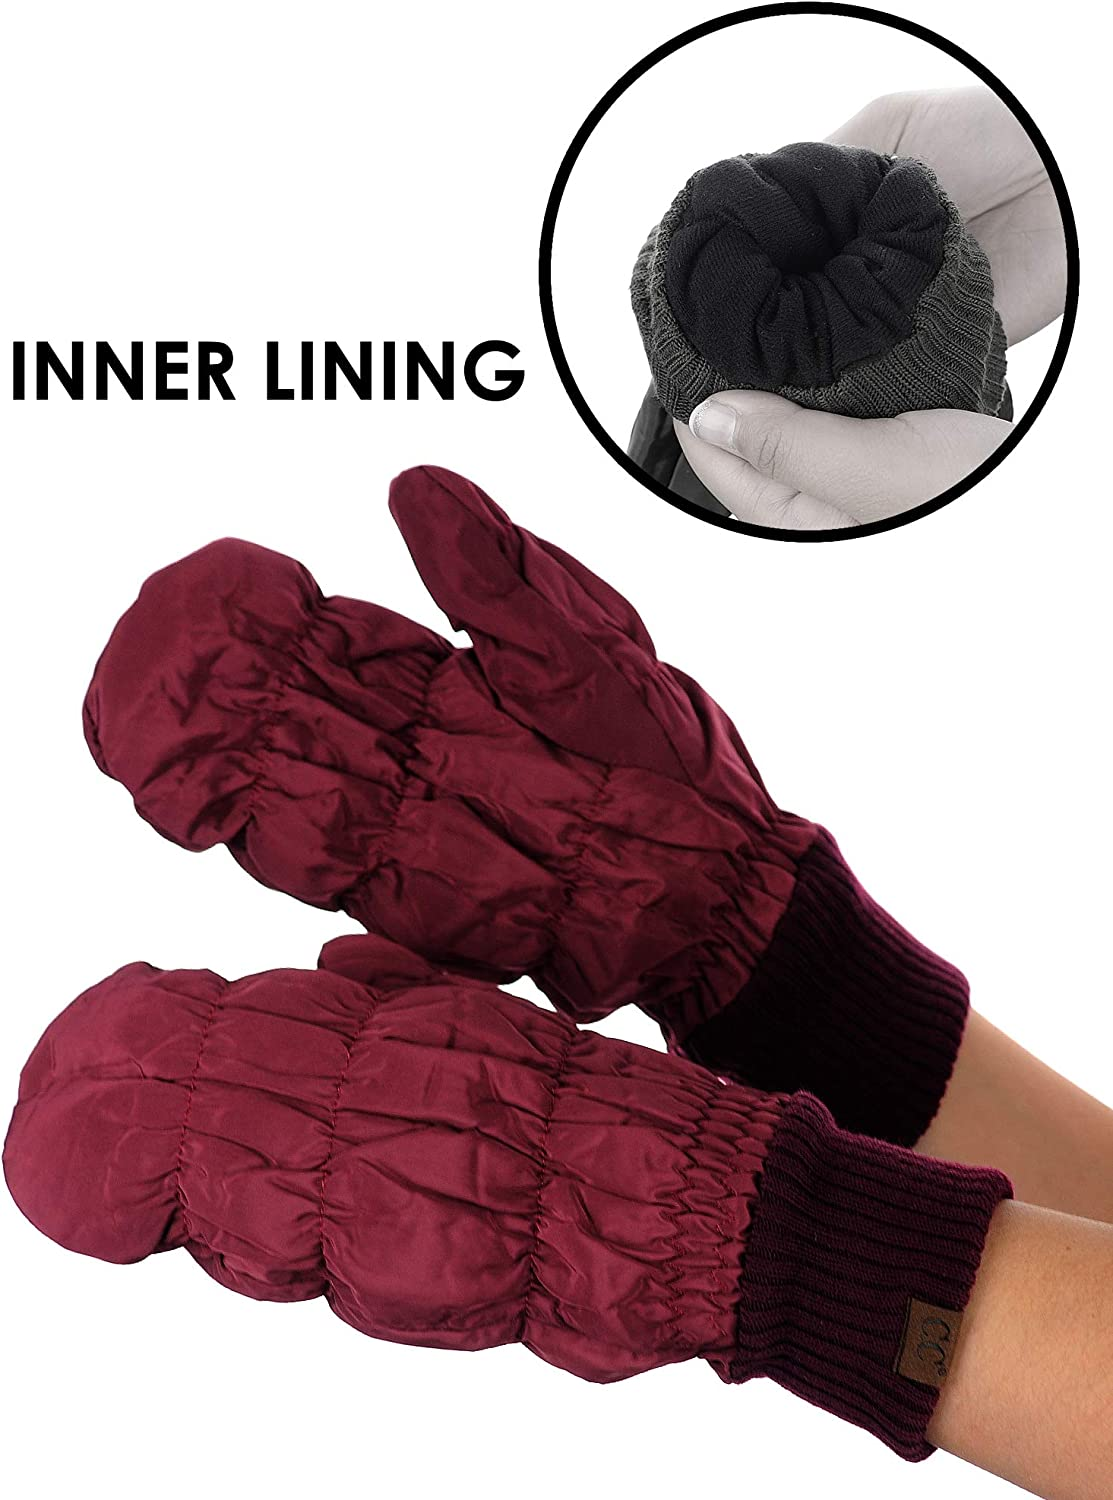 C.C Unisex Light Warm Soft Quilted Elastic Insulated Puffer Mittens